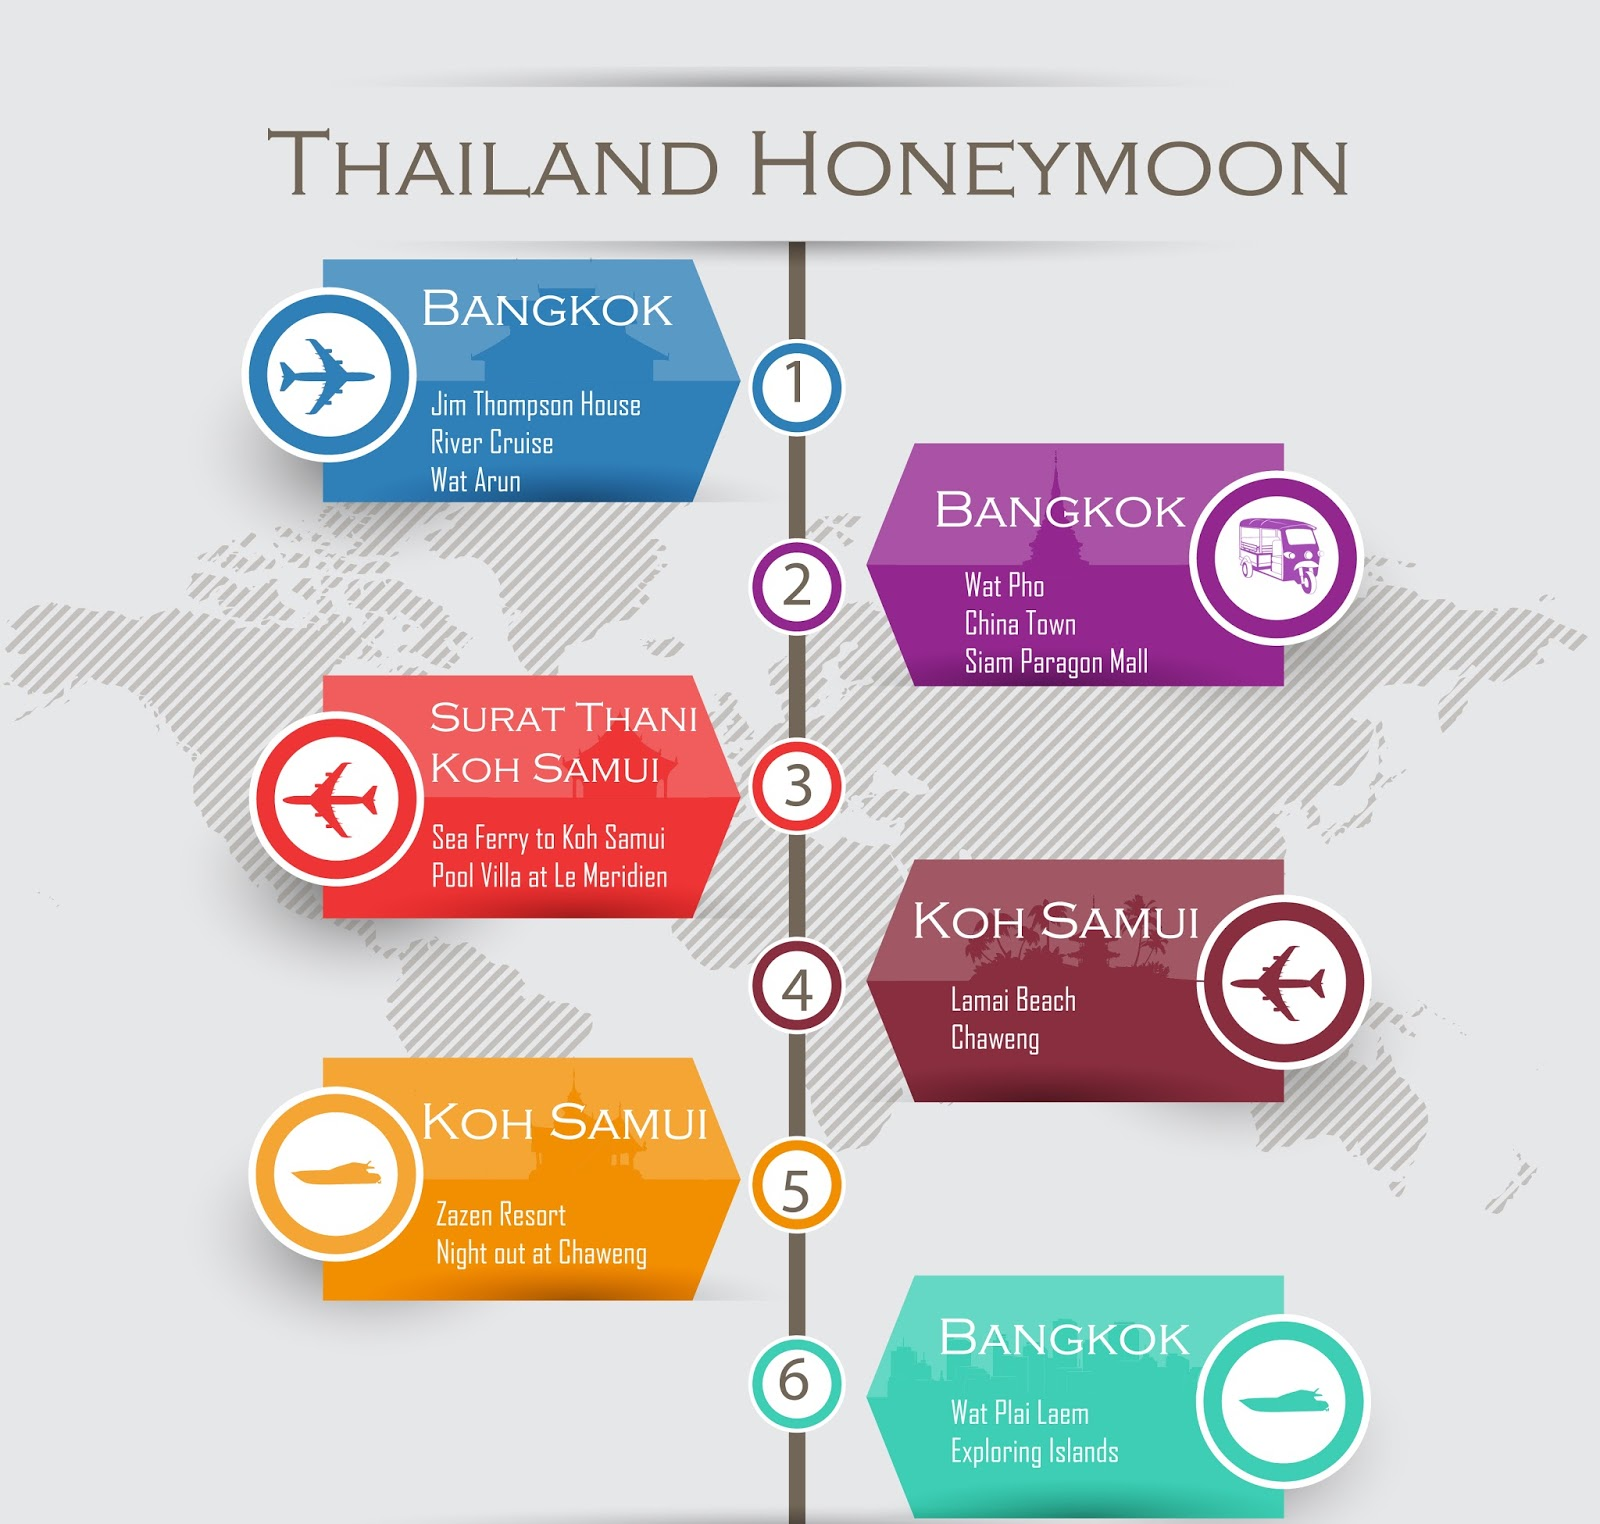 Thailand Honeymoon Plan , Thailand Honeymoon Plan , Thailand Honeymoon Package